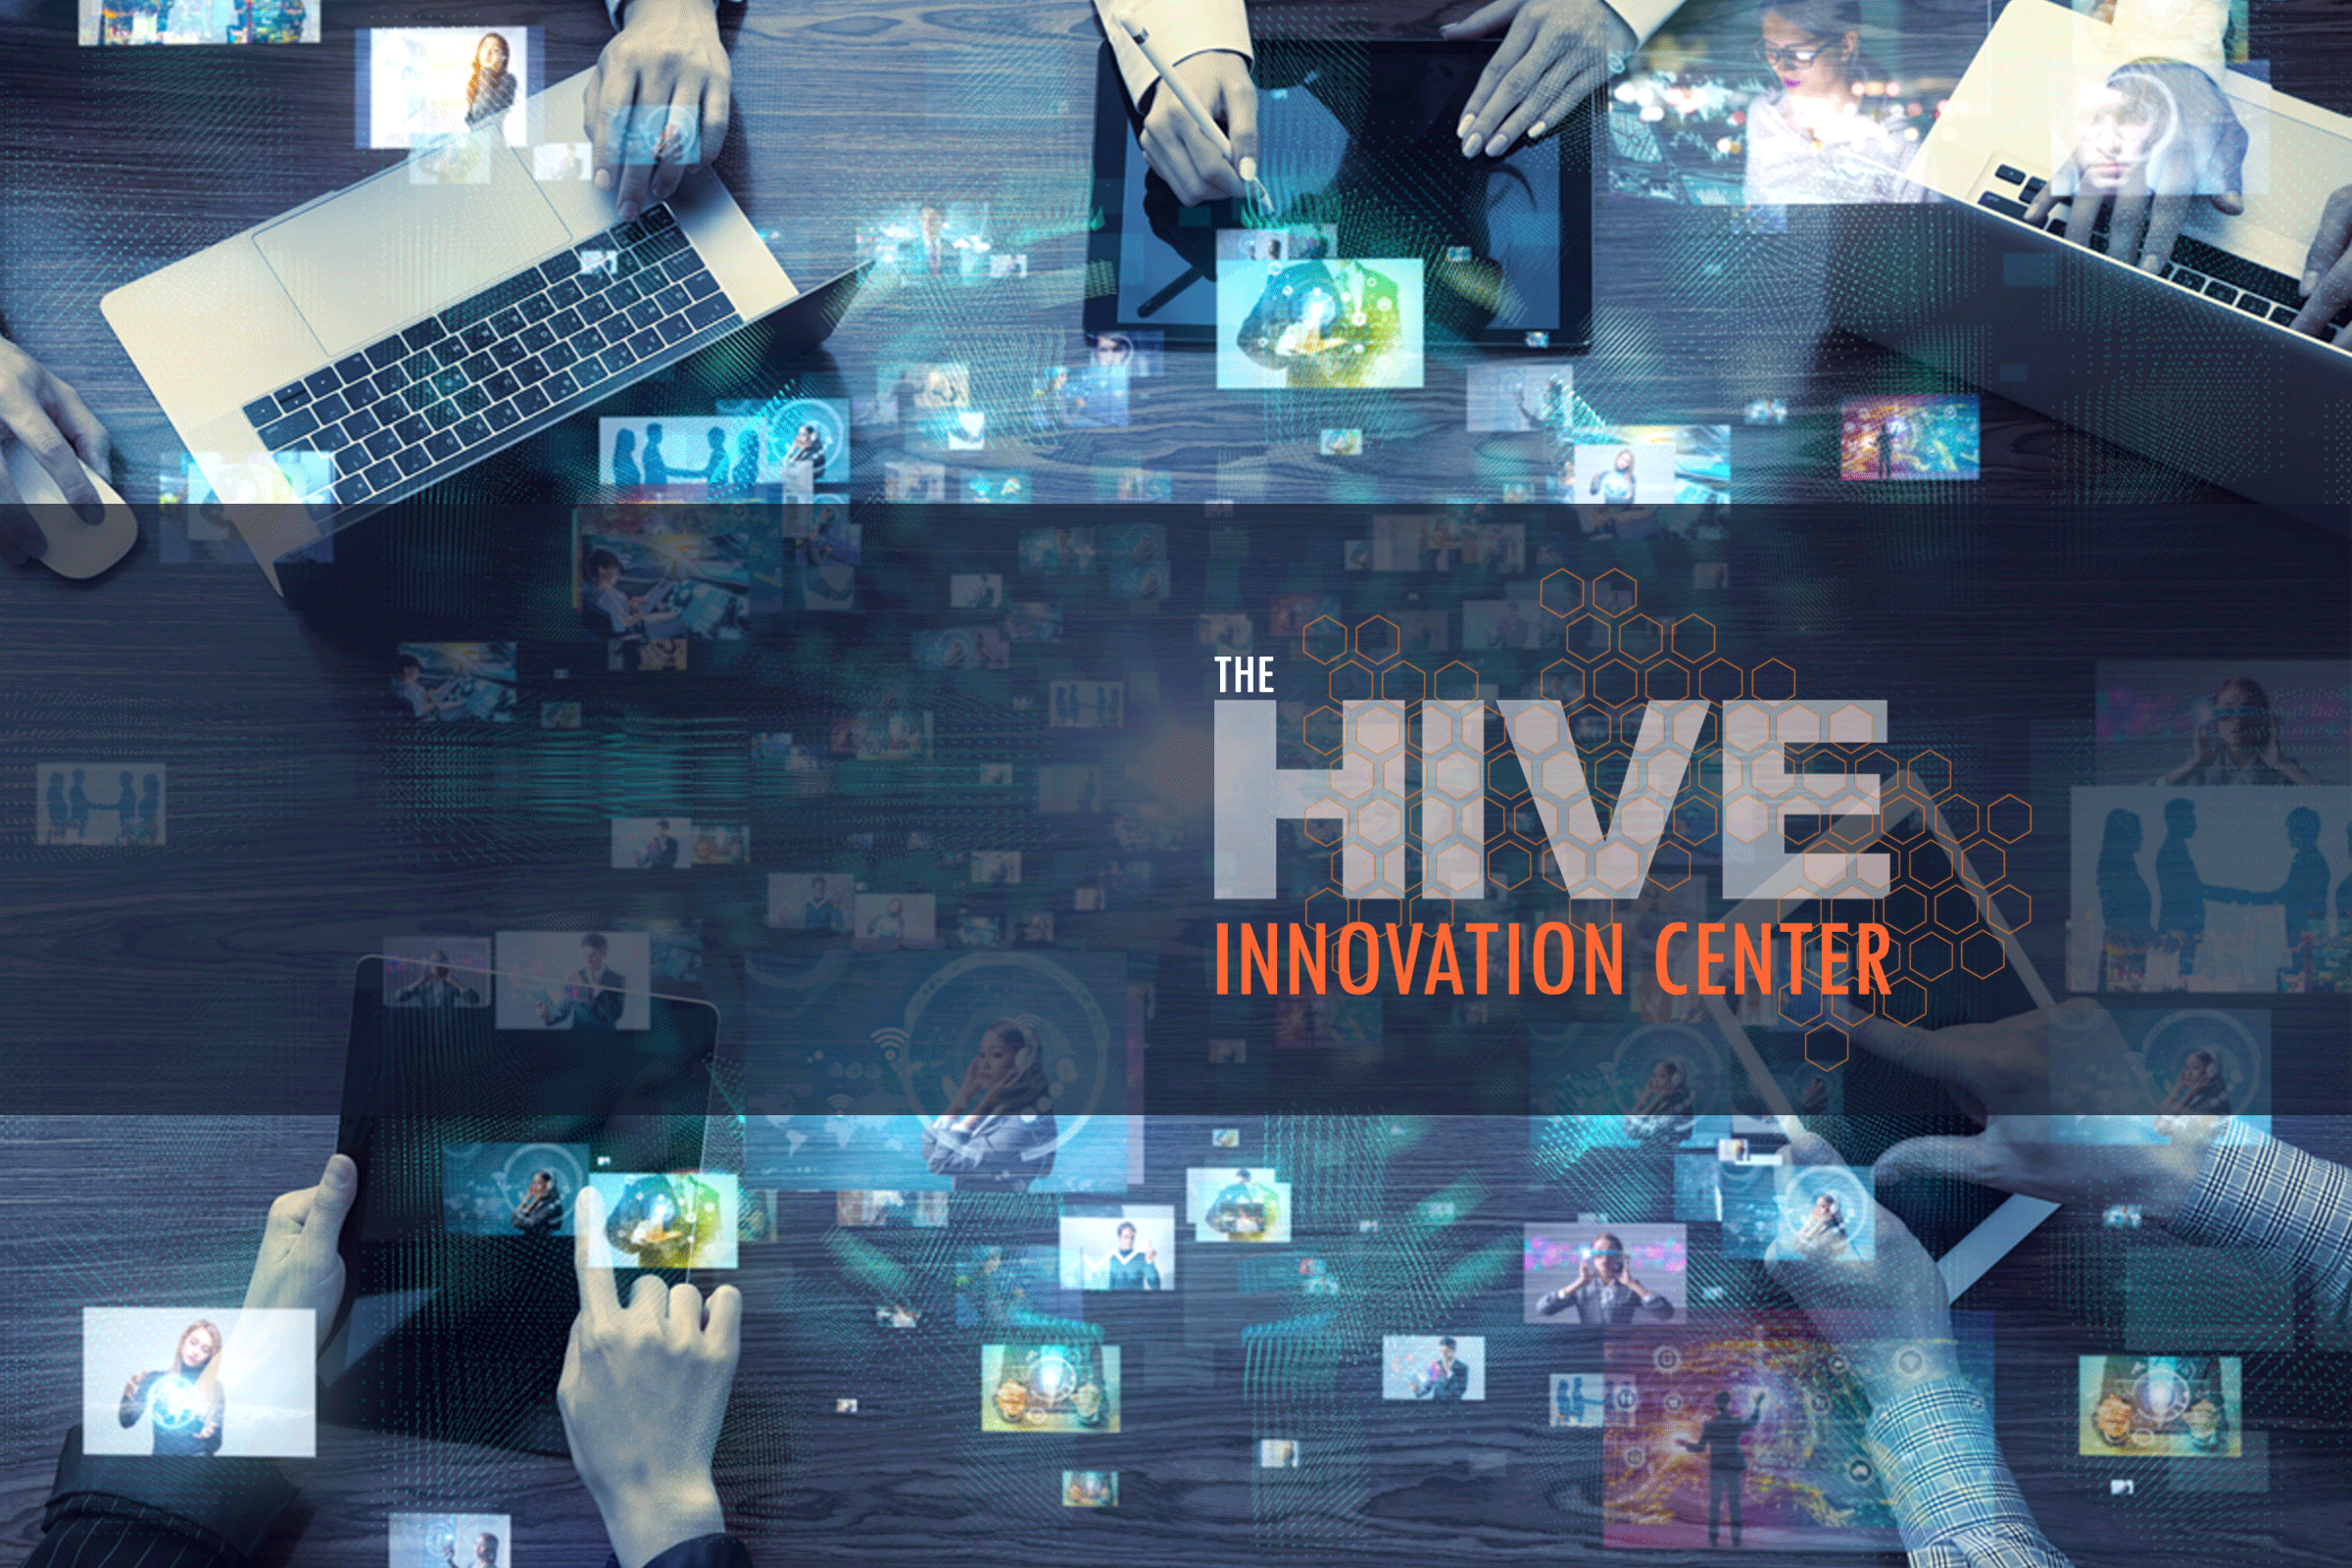 The HIVE Innovation Center